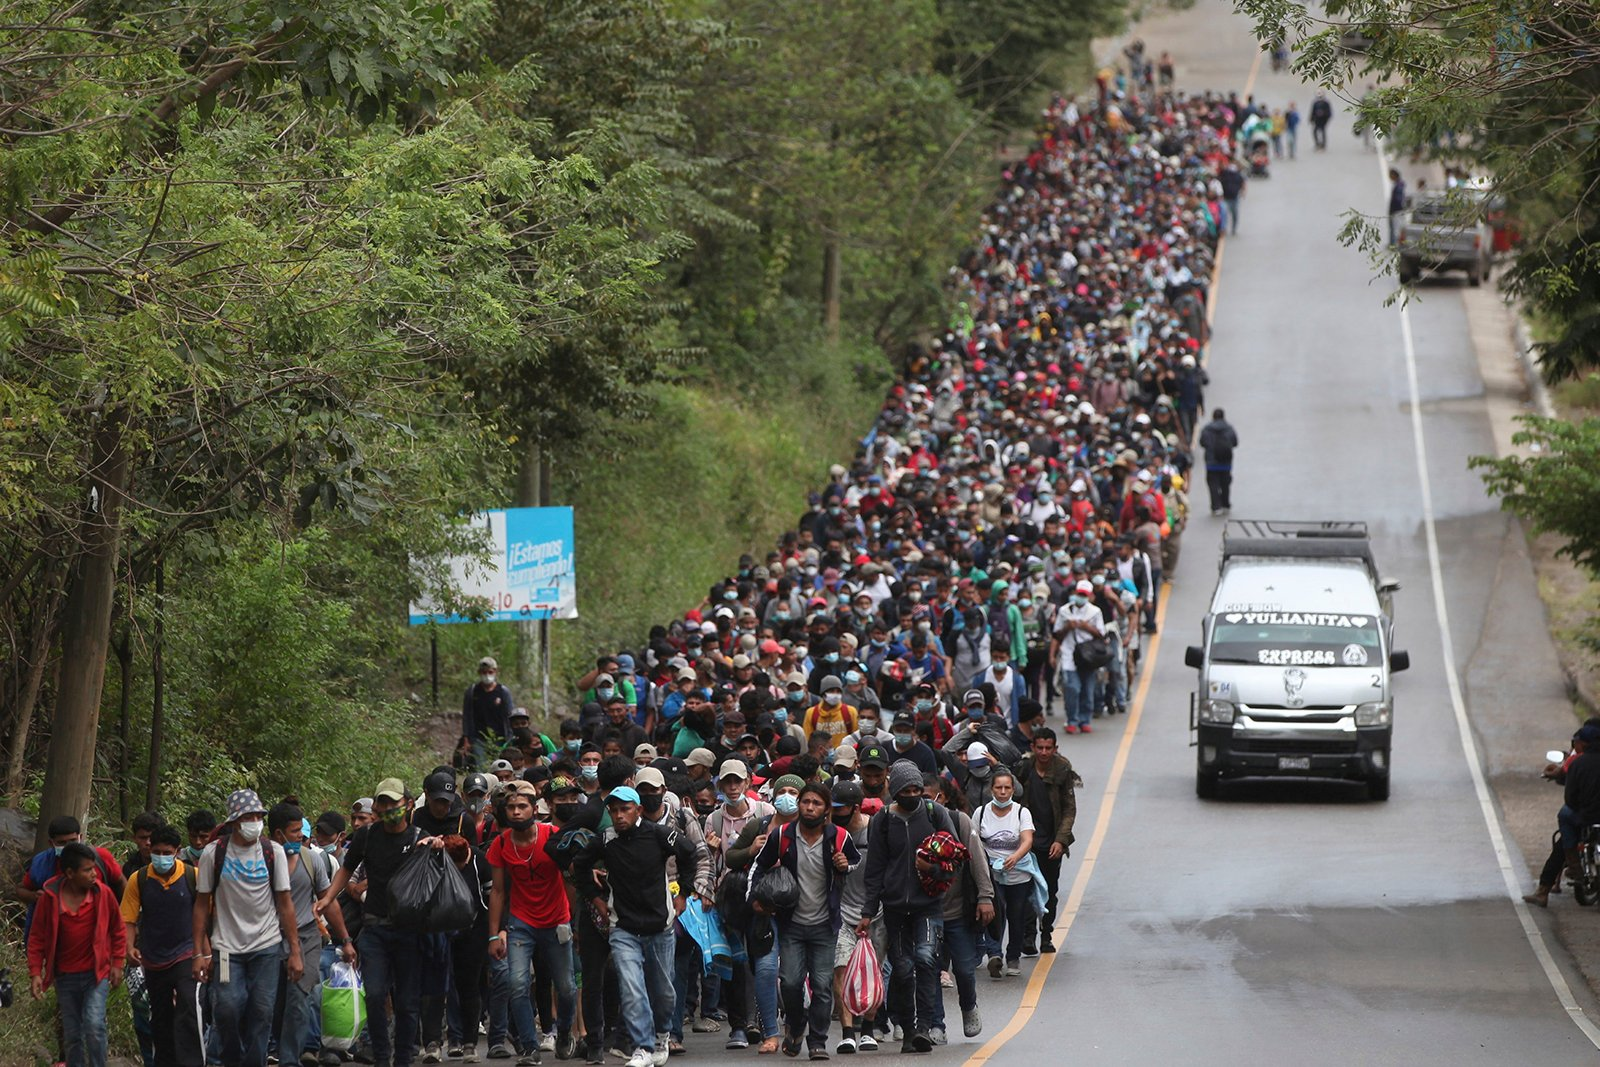 Honduran migrants hoping to reach the U.S. border walk along a highway in Chiquimula, Guatemala, on Jan. 16, 2021. Guatemalan authorities estimated that as many as 9,000 Honduran migrants have crossed into Guatemala as part of an effort to form a new caravan to reach the U.S. border. (AP Photo/Sandra Sebastian)